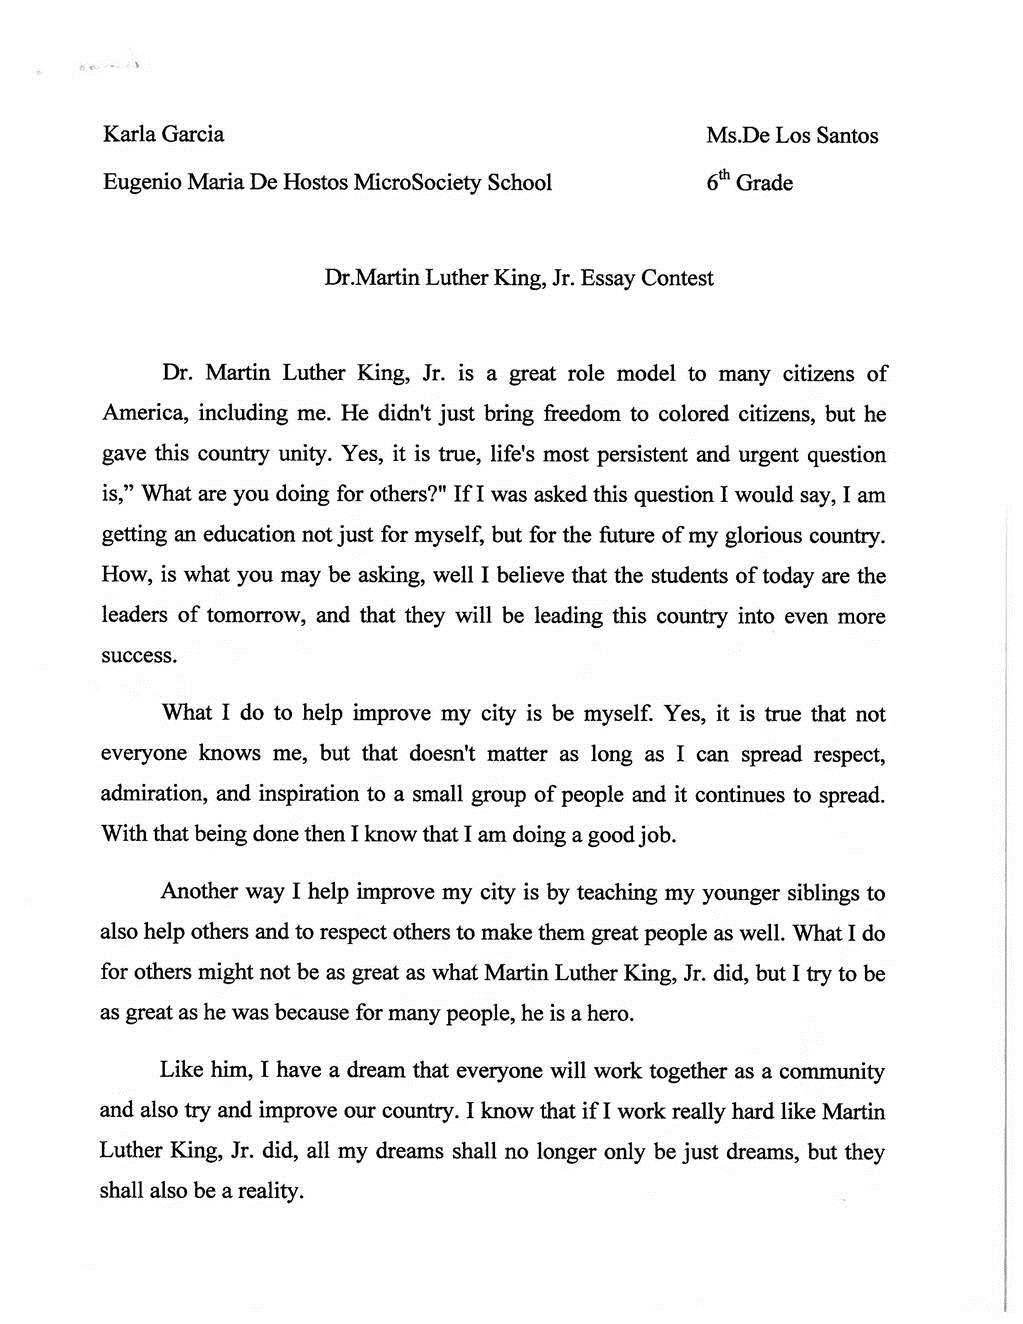 my dream car essay mlk essays essay describing mlk as a historical  mlk essays essay describing mlk as a historical leader the martin essays about martin luther king essay my dream car